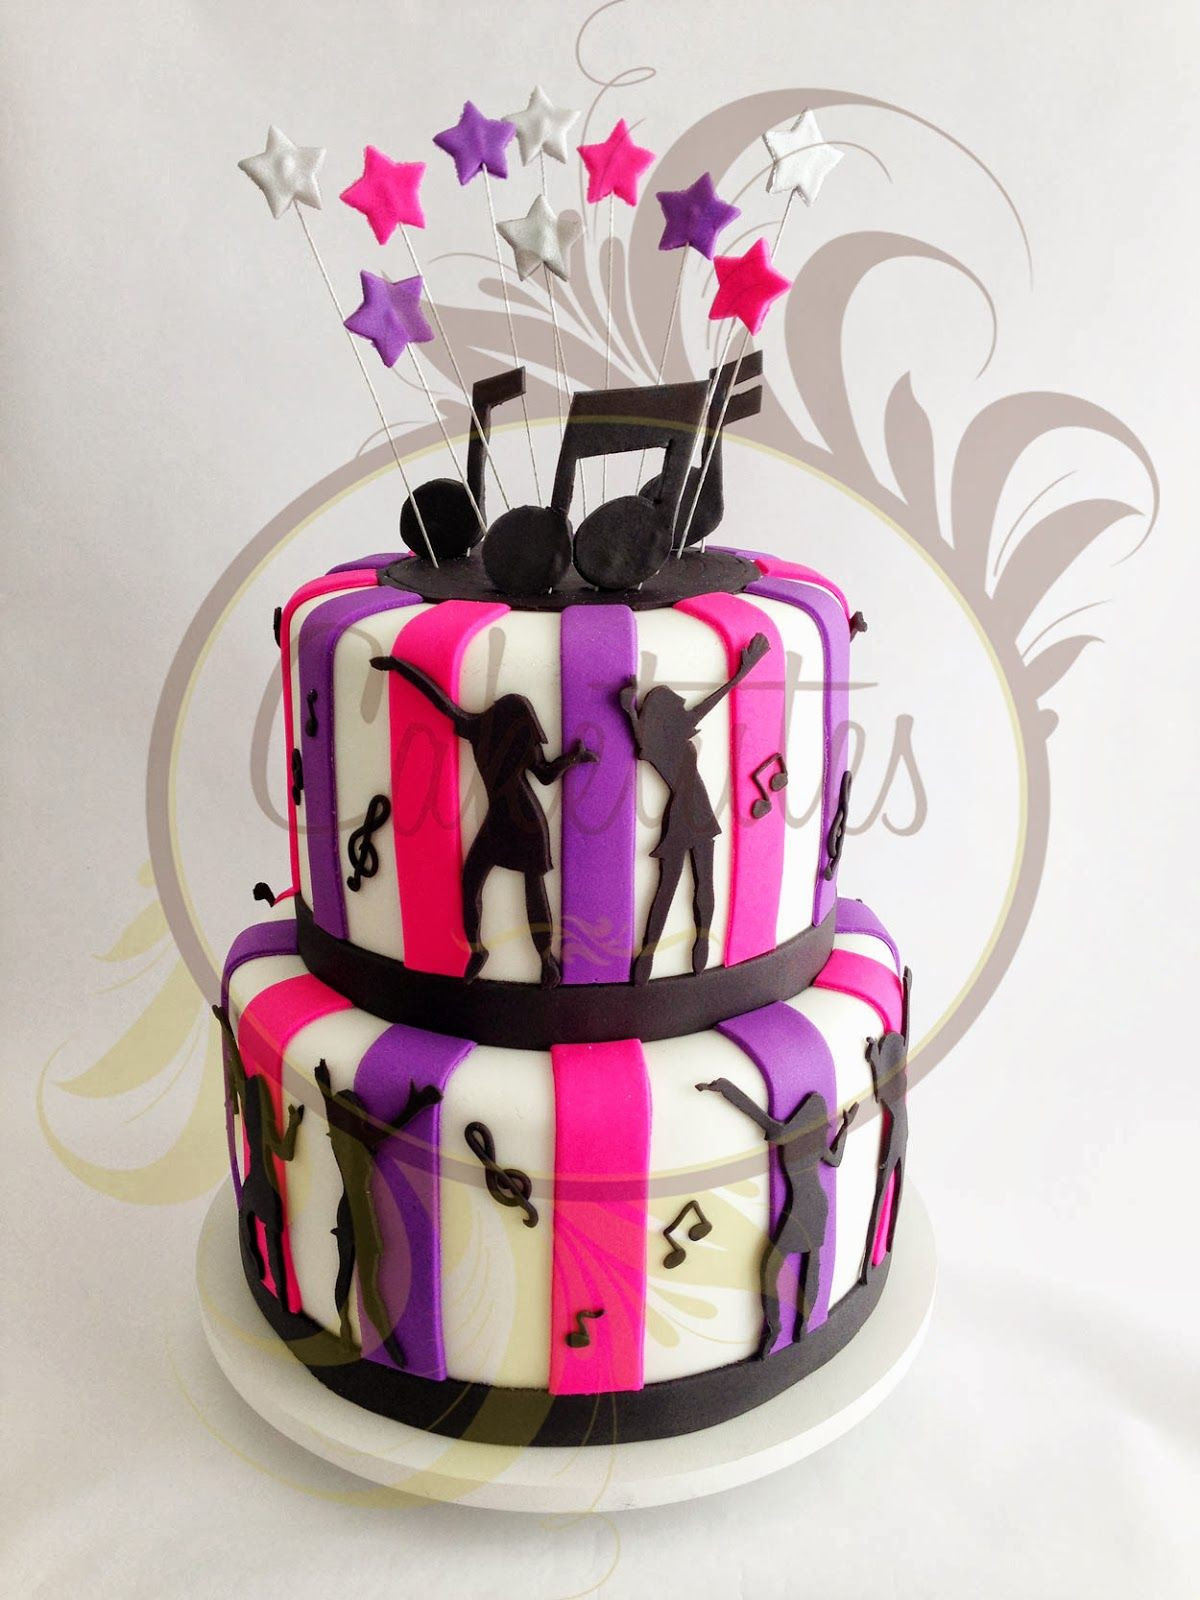 Best ideas about Dancing Birthday Cake . Save or Pin Caketutes Cake Designer Bolo Dance Now.